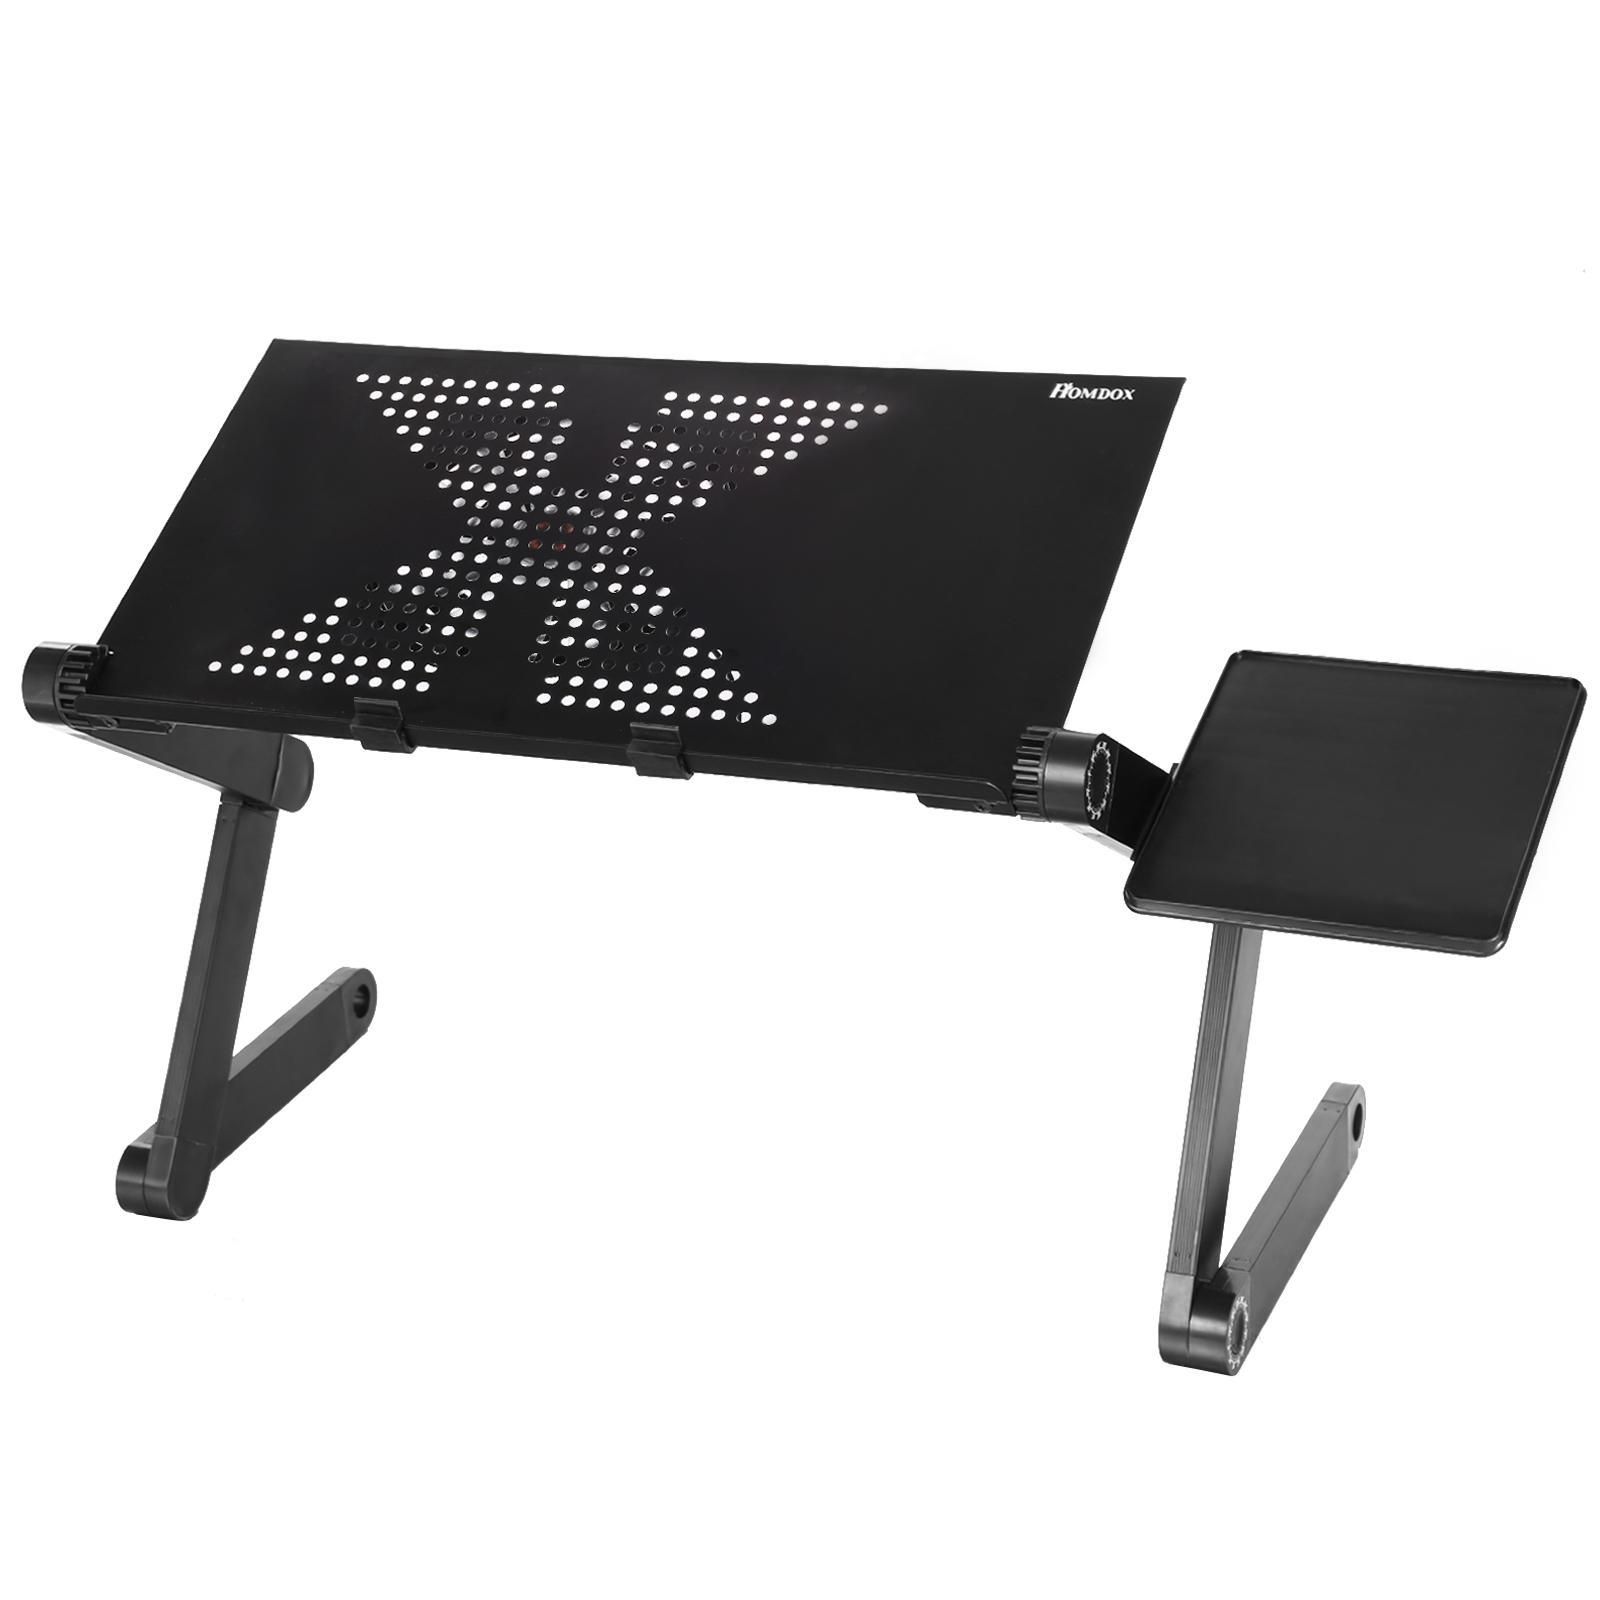 Table Foldable Table Desk Meadow Carpet Laptop Notebook Adjustable Black Computer Stand Bed Sofa 360 Degree(China)